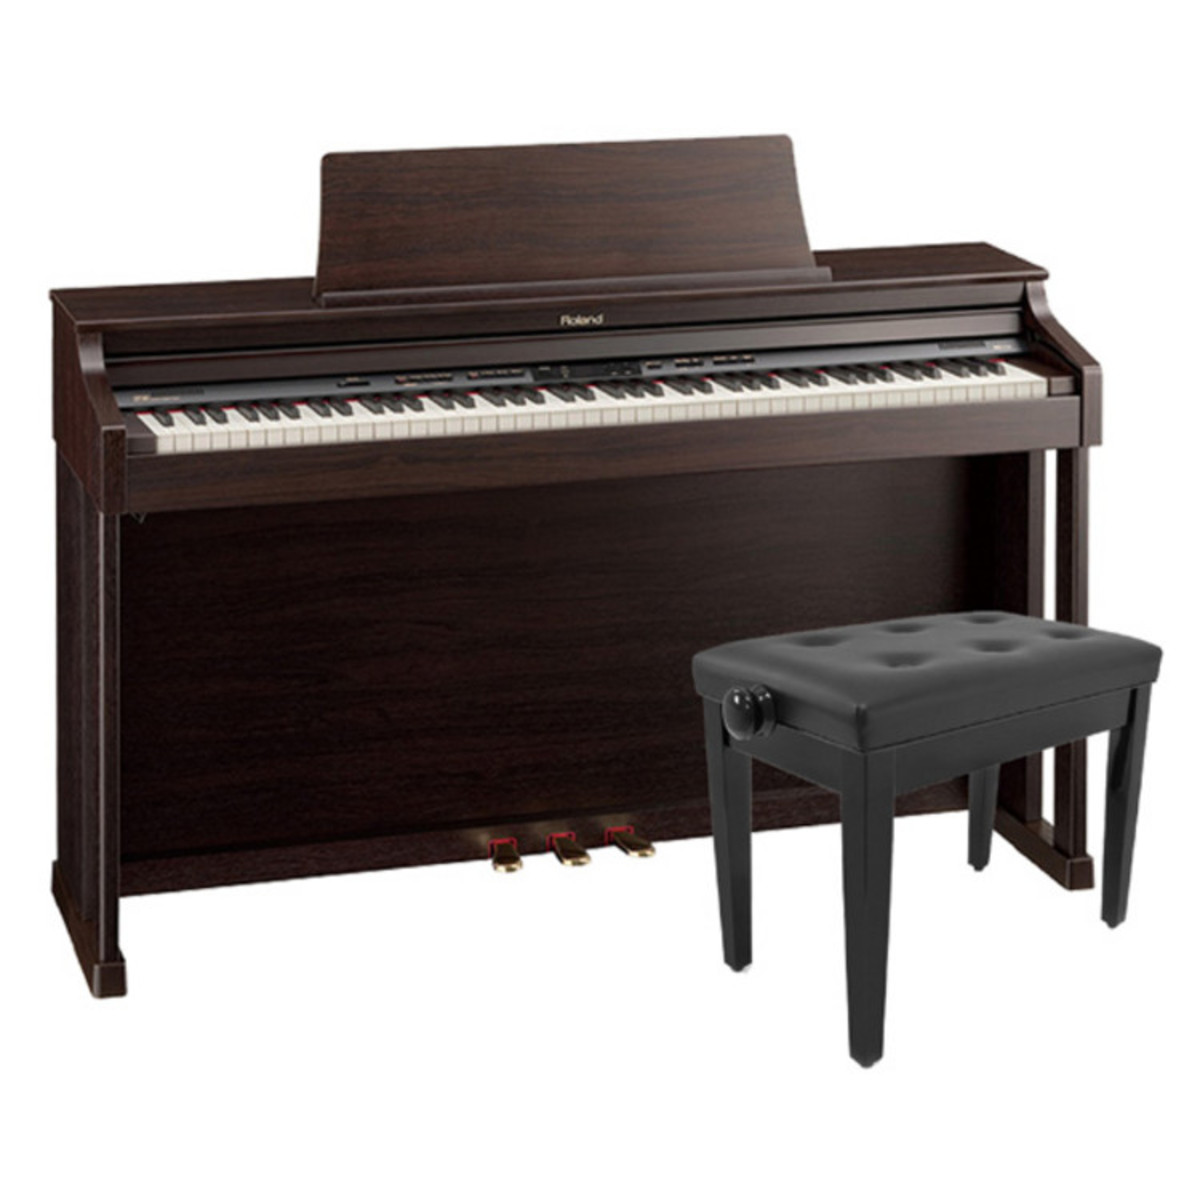 Disc Roland Hp305 Digital Piano Rosewood With Rise Piano